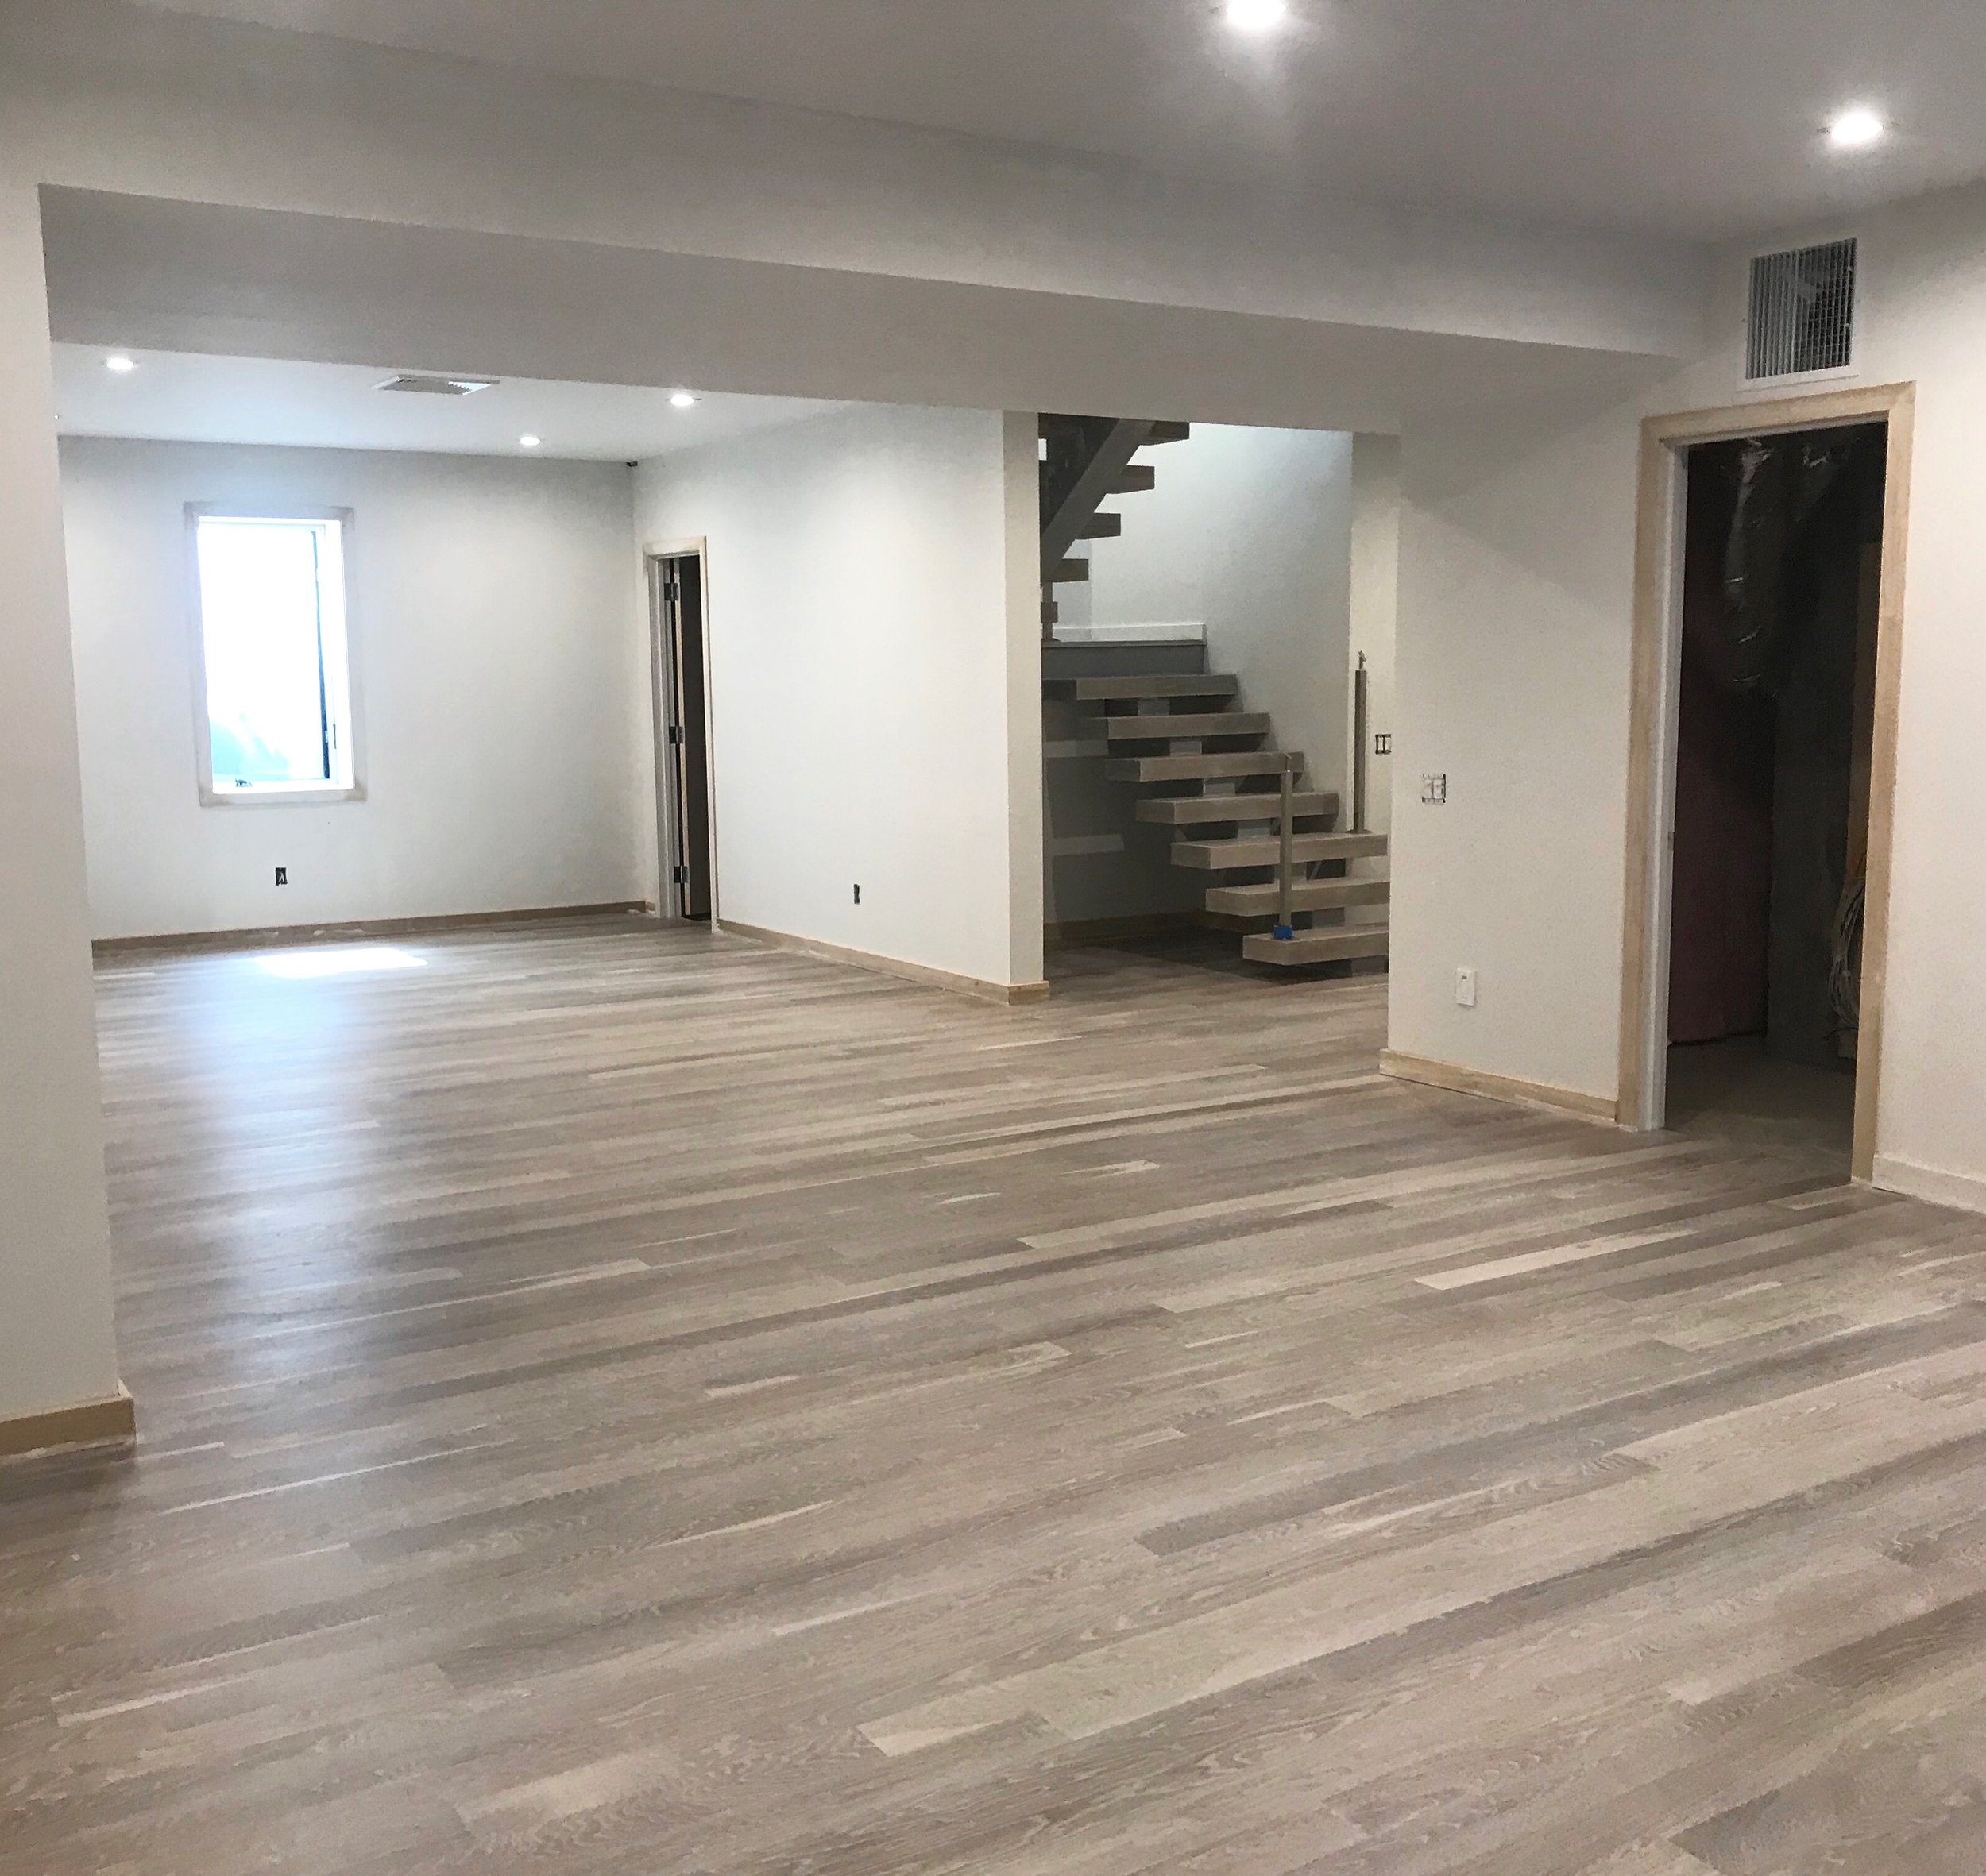 "Beautiful 4"" White Oak Engineered wood floor we installed in a basement in Sag Harbor, NY this winter.  The floor was unfinished, and we recently sanded and finished it with Woca Driftwood Lye White and Woca Color Oil Extra White hardwax oil.  Engineered flooring gives you the opportunity to make your basement flooring look just as high end as the rest of the house!  In this particular project, we installed a 4"" White Oak solid on the upper 2 floors, and sanded and finished all the floors exactly the same."